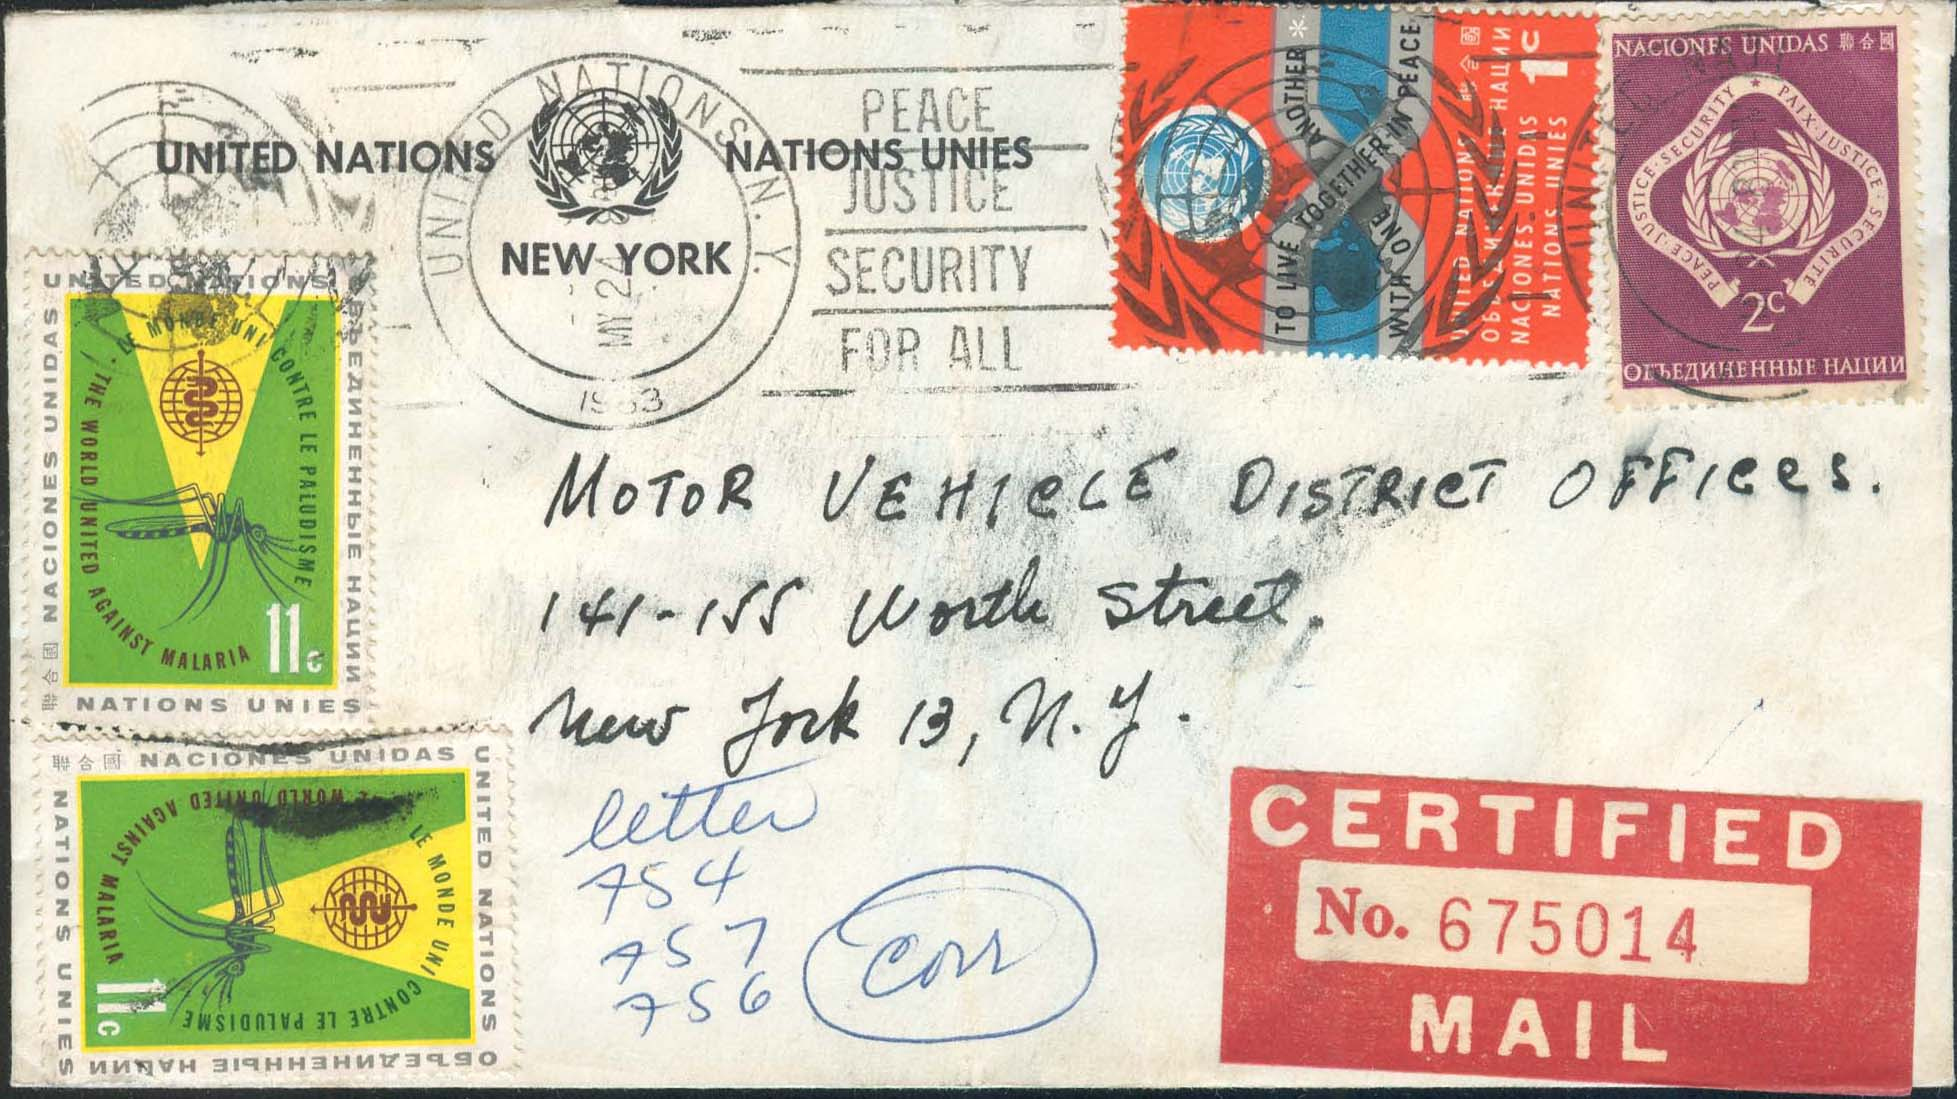 Certified Cover sent 05/24/1963